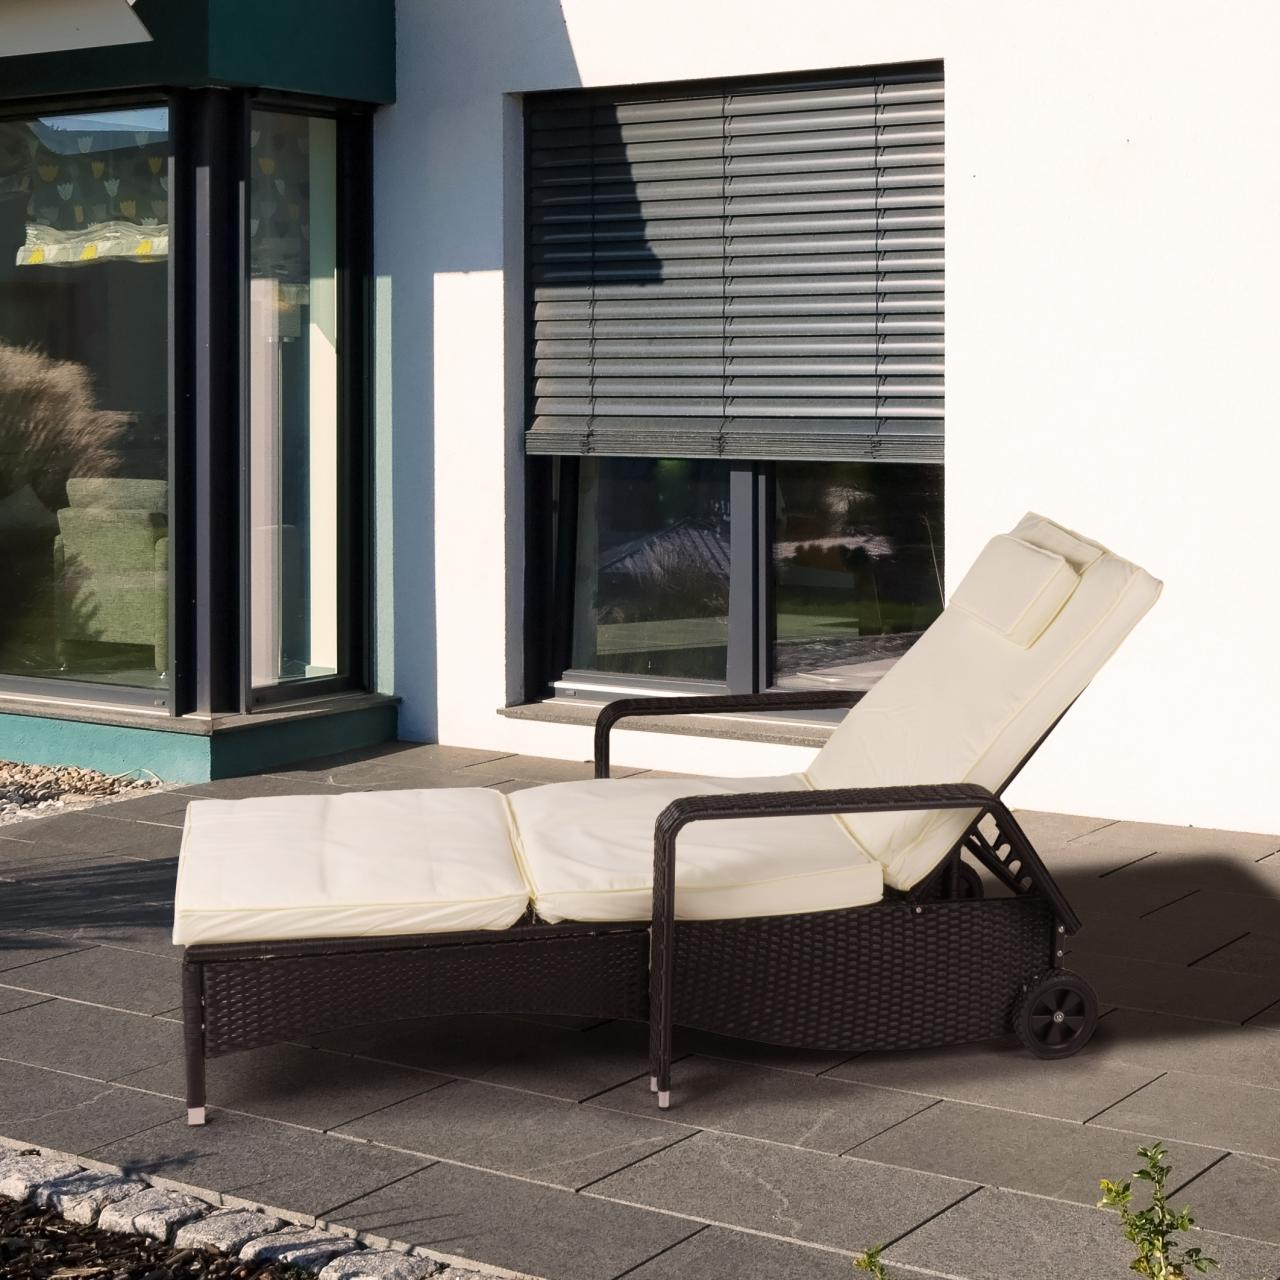 polyrattan sonnenliege gartenliege rattan garten liege rattanm bel gartenm bel ebay. Black Bedroom Furniture Sets. Home Design Ideas